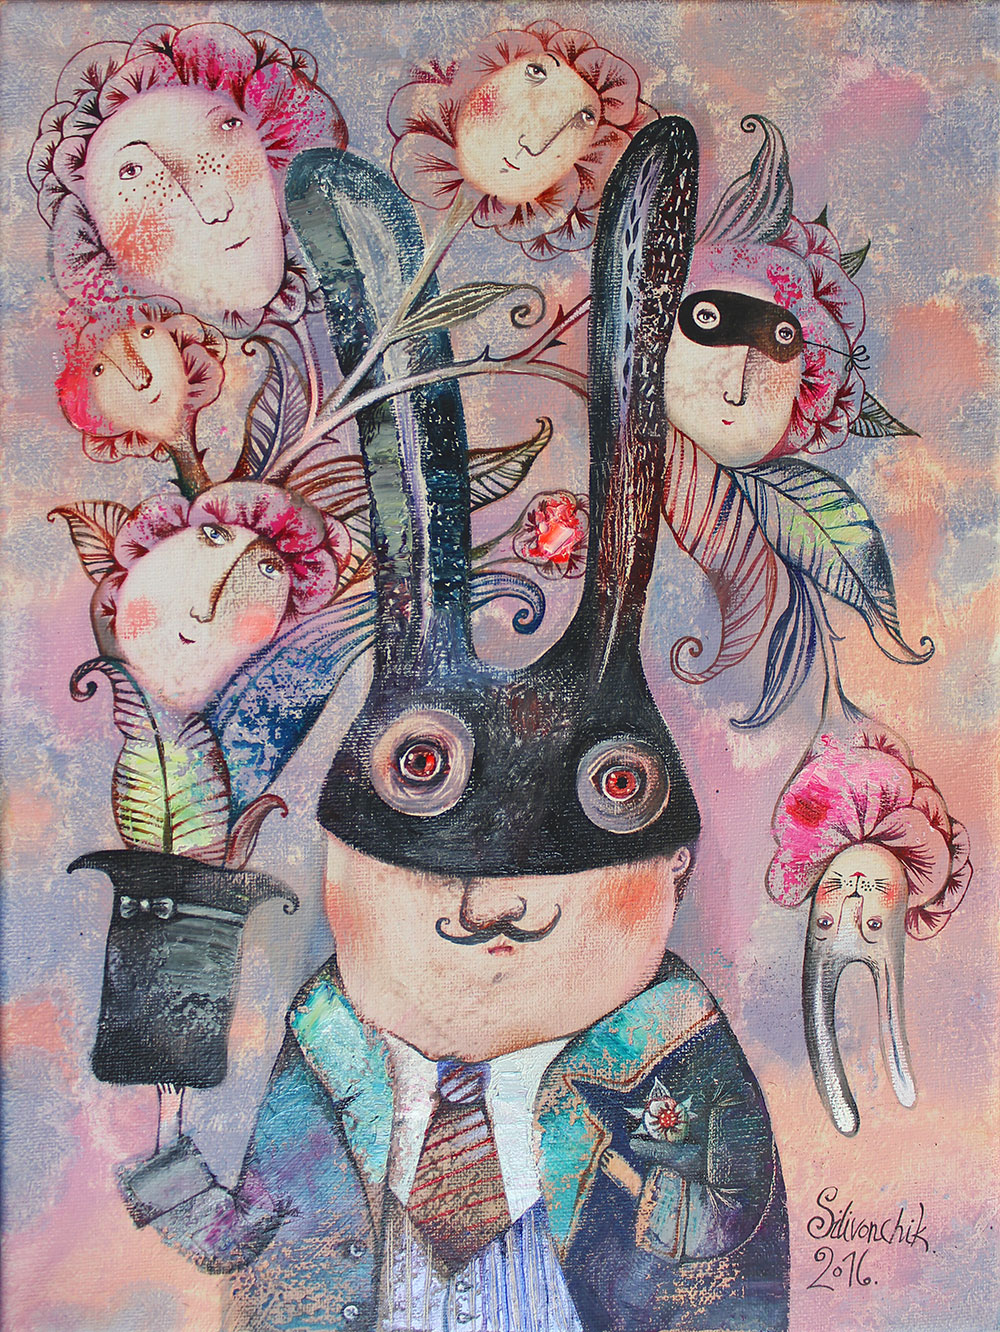 Magic Rabbit. 2016. 40x30cm. Oil on canvas